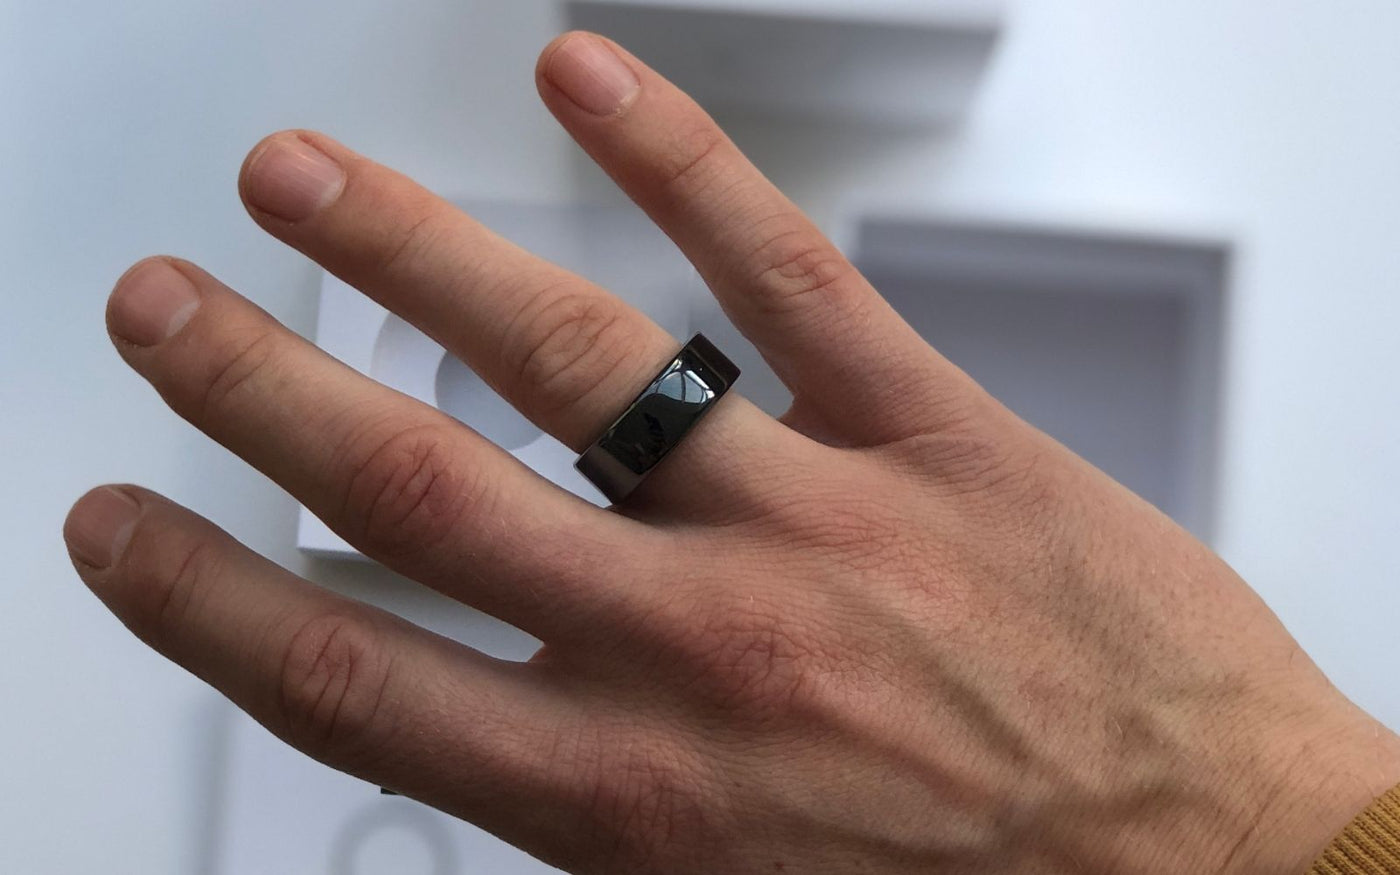 Oura ring on mans hand